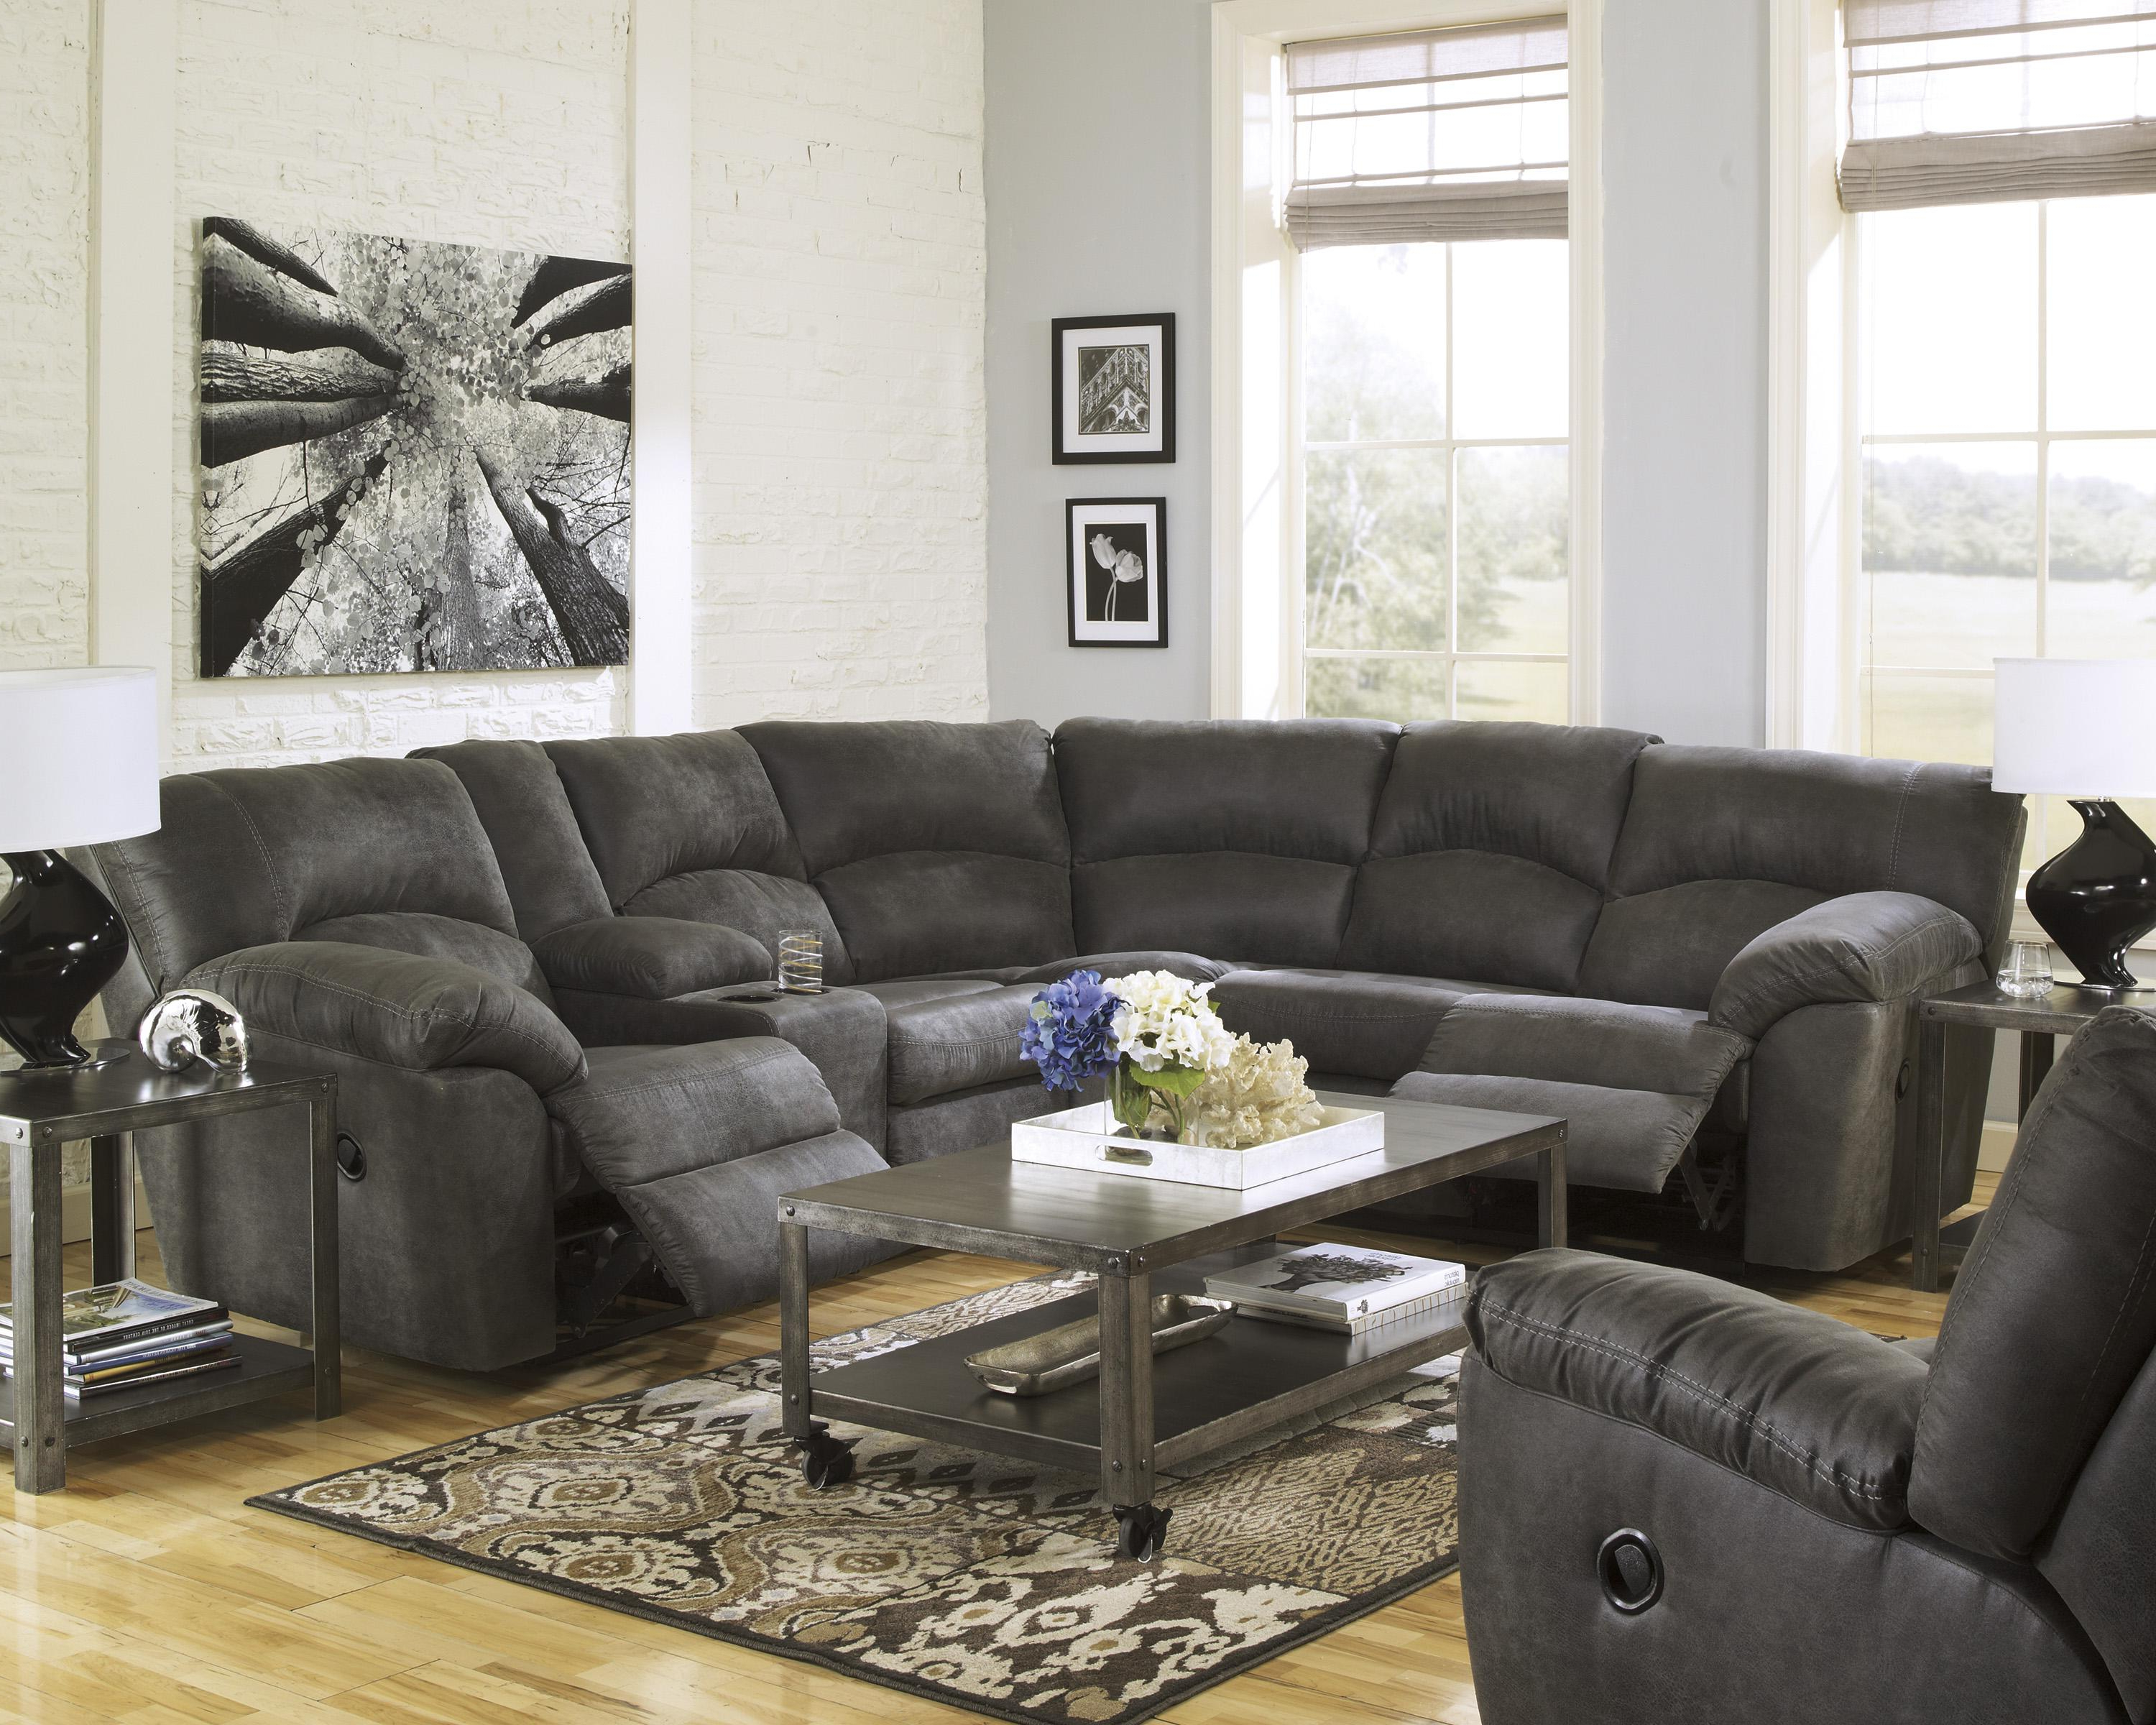 Trendy Denali Light Grey 6 Piece Reclining Sectionals With 2 Power Headrests Pertaining To Sectional Reclining Sofa – Locsbyhelenelorasa (View 20 of 20)